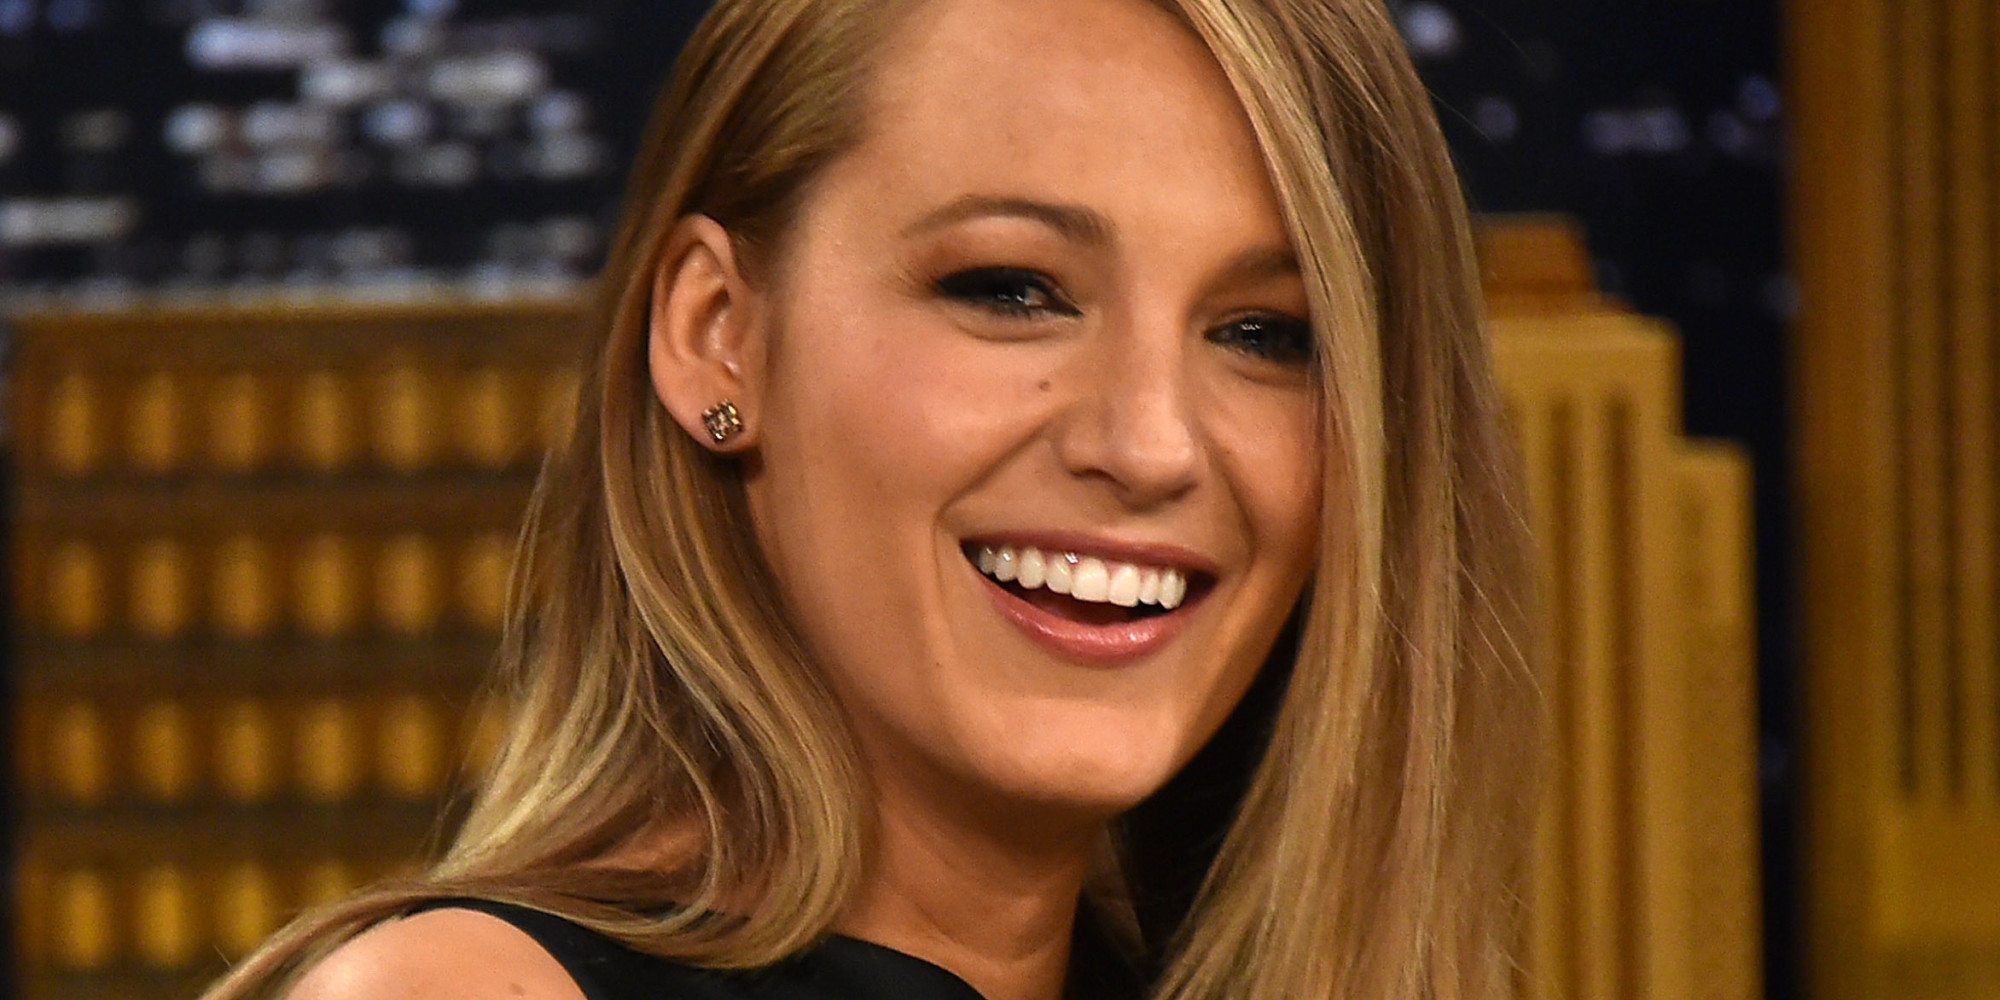 This Photo Of Blake Lively From High School Is 2000s Perfection | The ... Blake Lively